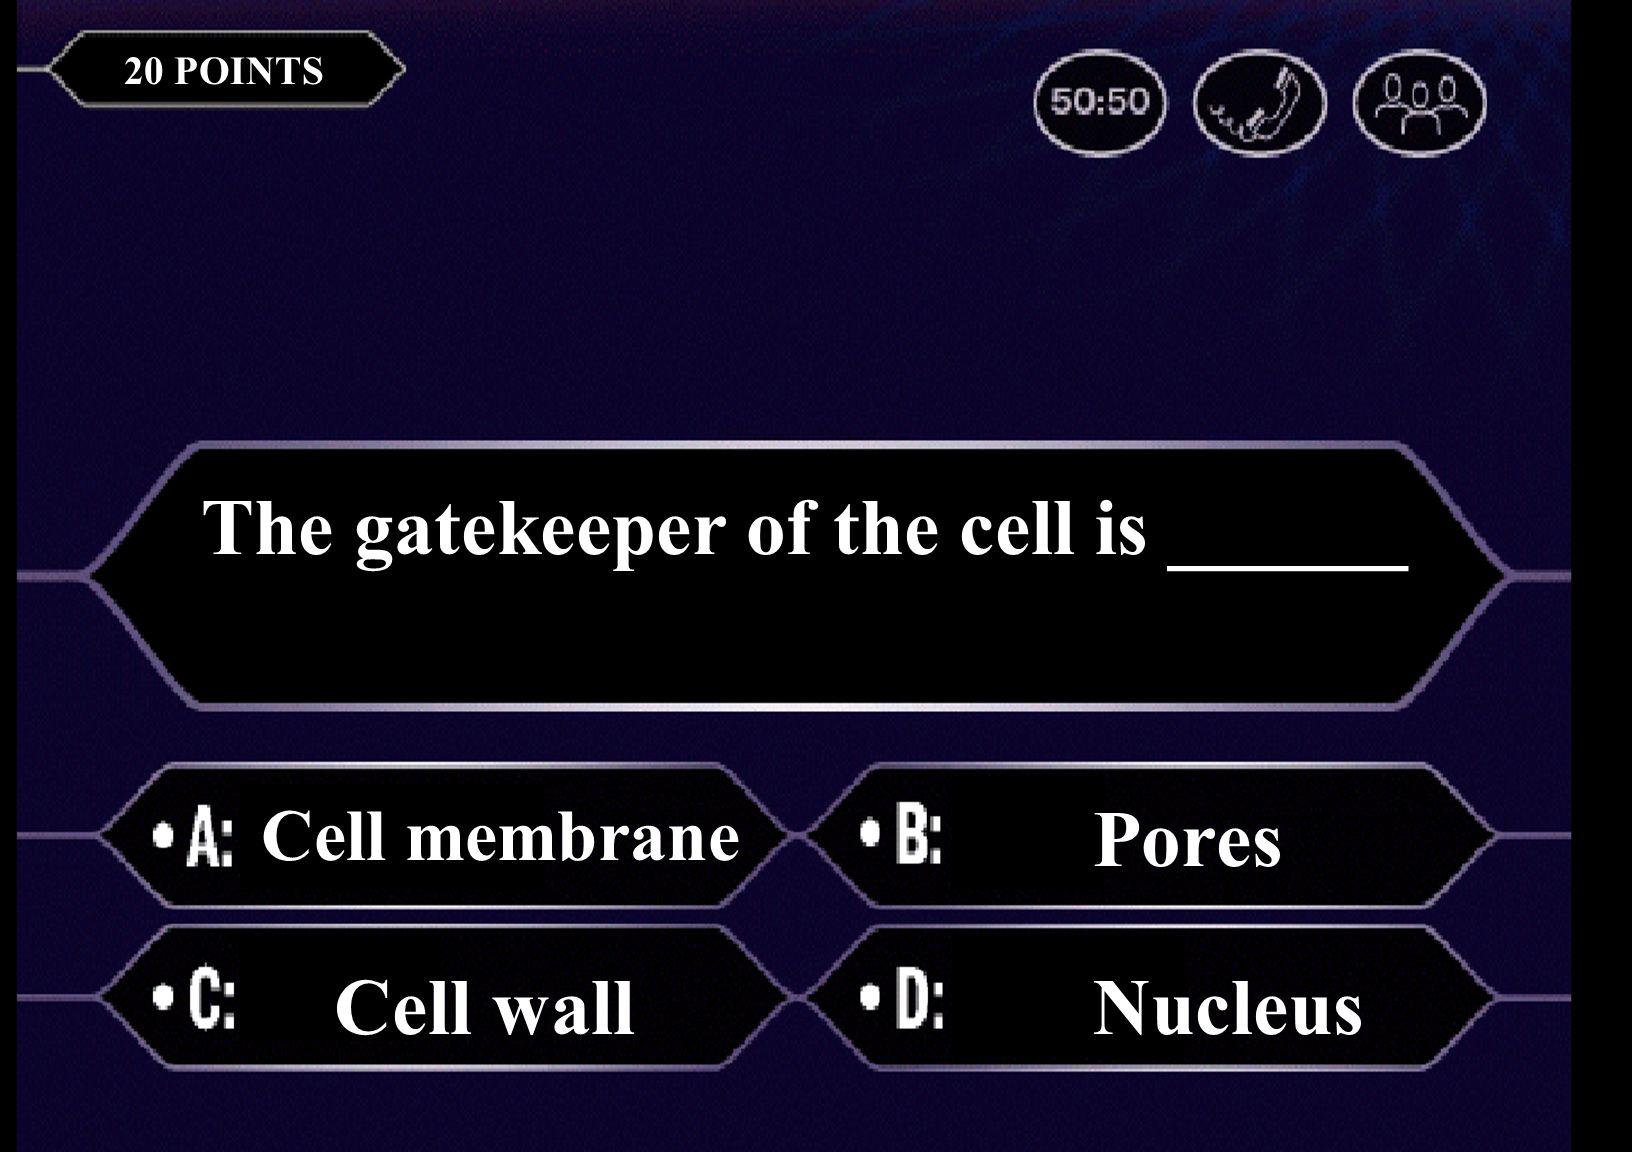 The basic unit of life is a(n) cell airtissue 20 POINTS The gatekeeper of the cell is ______ Cell membrane Pores Cell wallNucleus